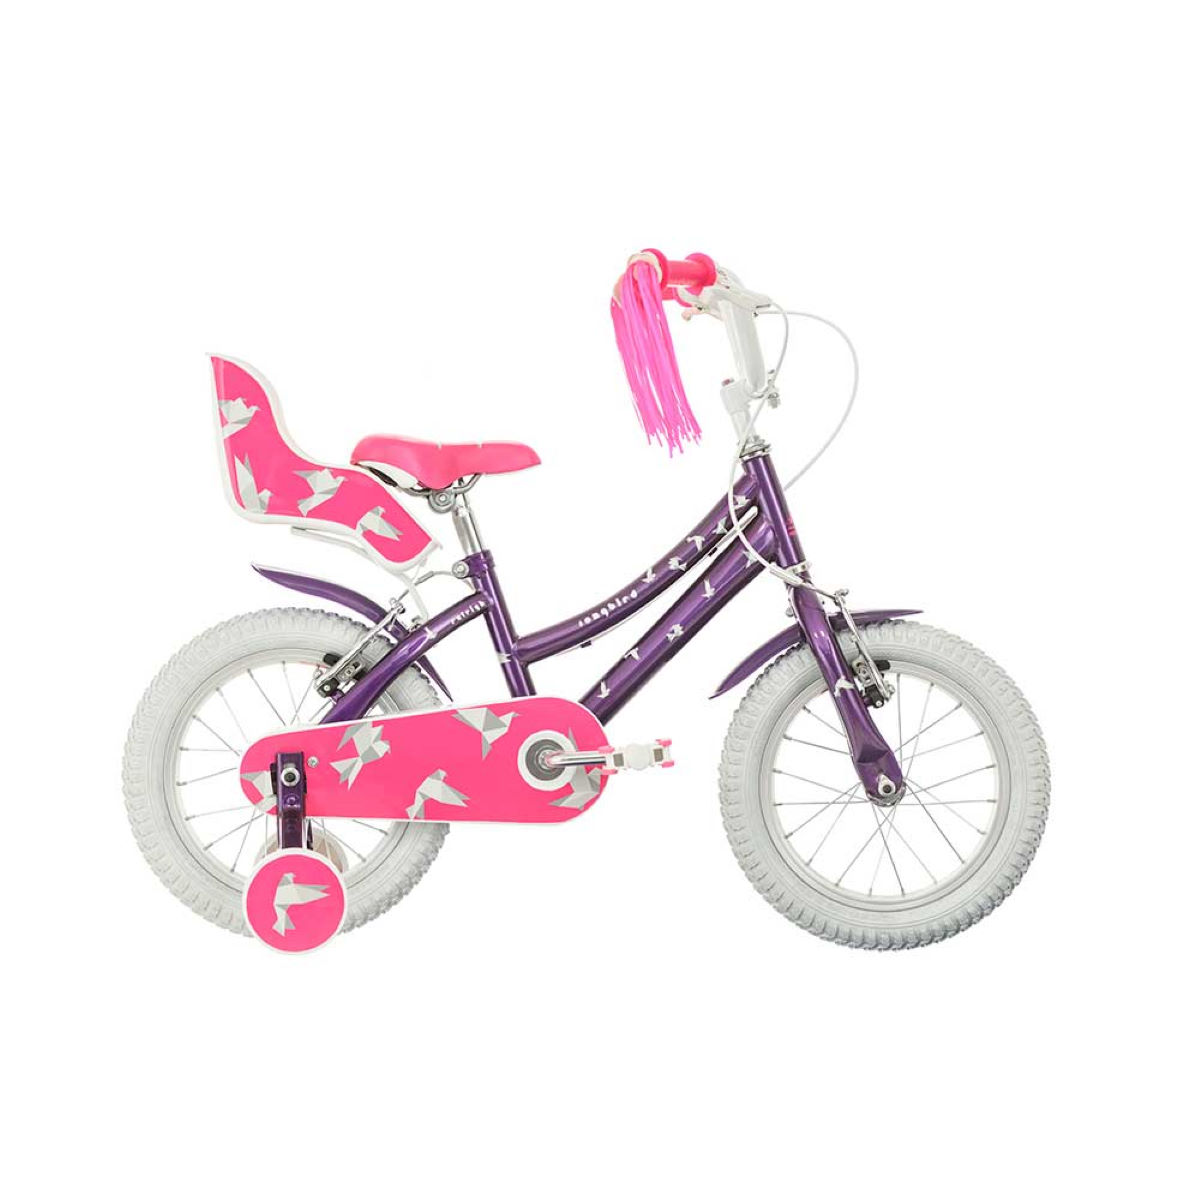 Raleigh Songbird 14 (2017) Kids Bike   Kids Bikes  Under 7